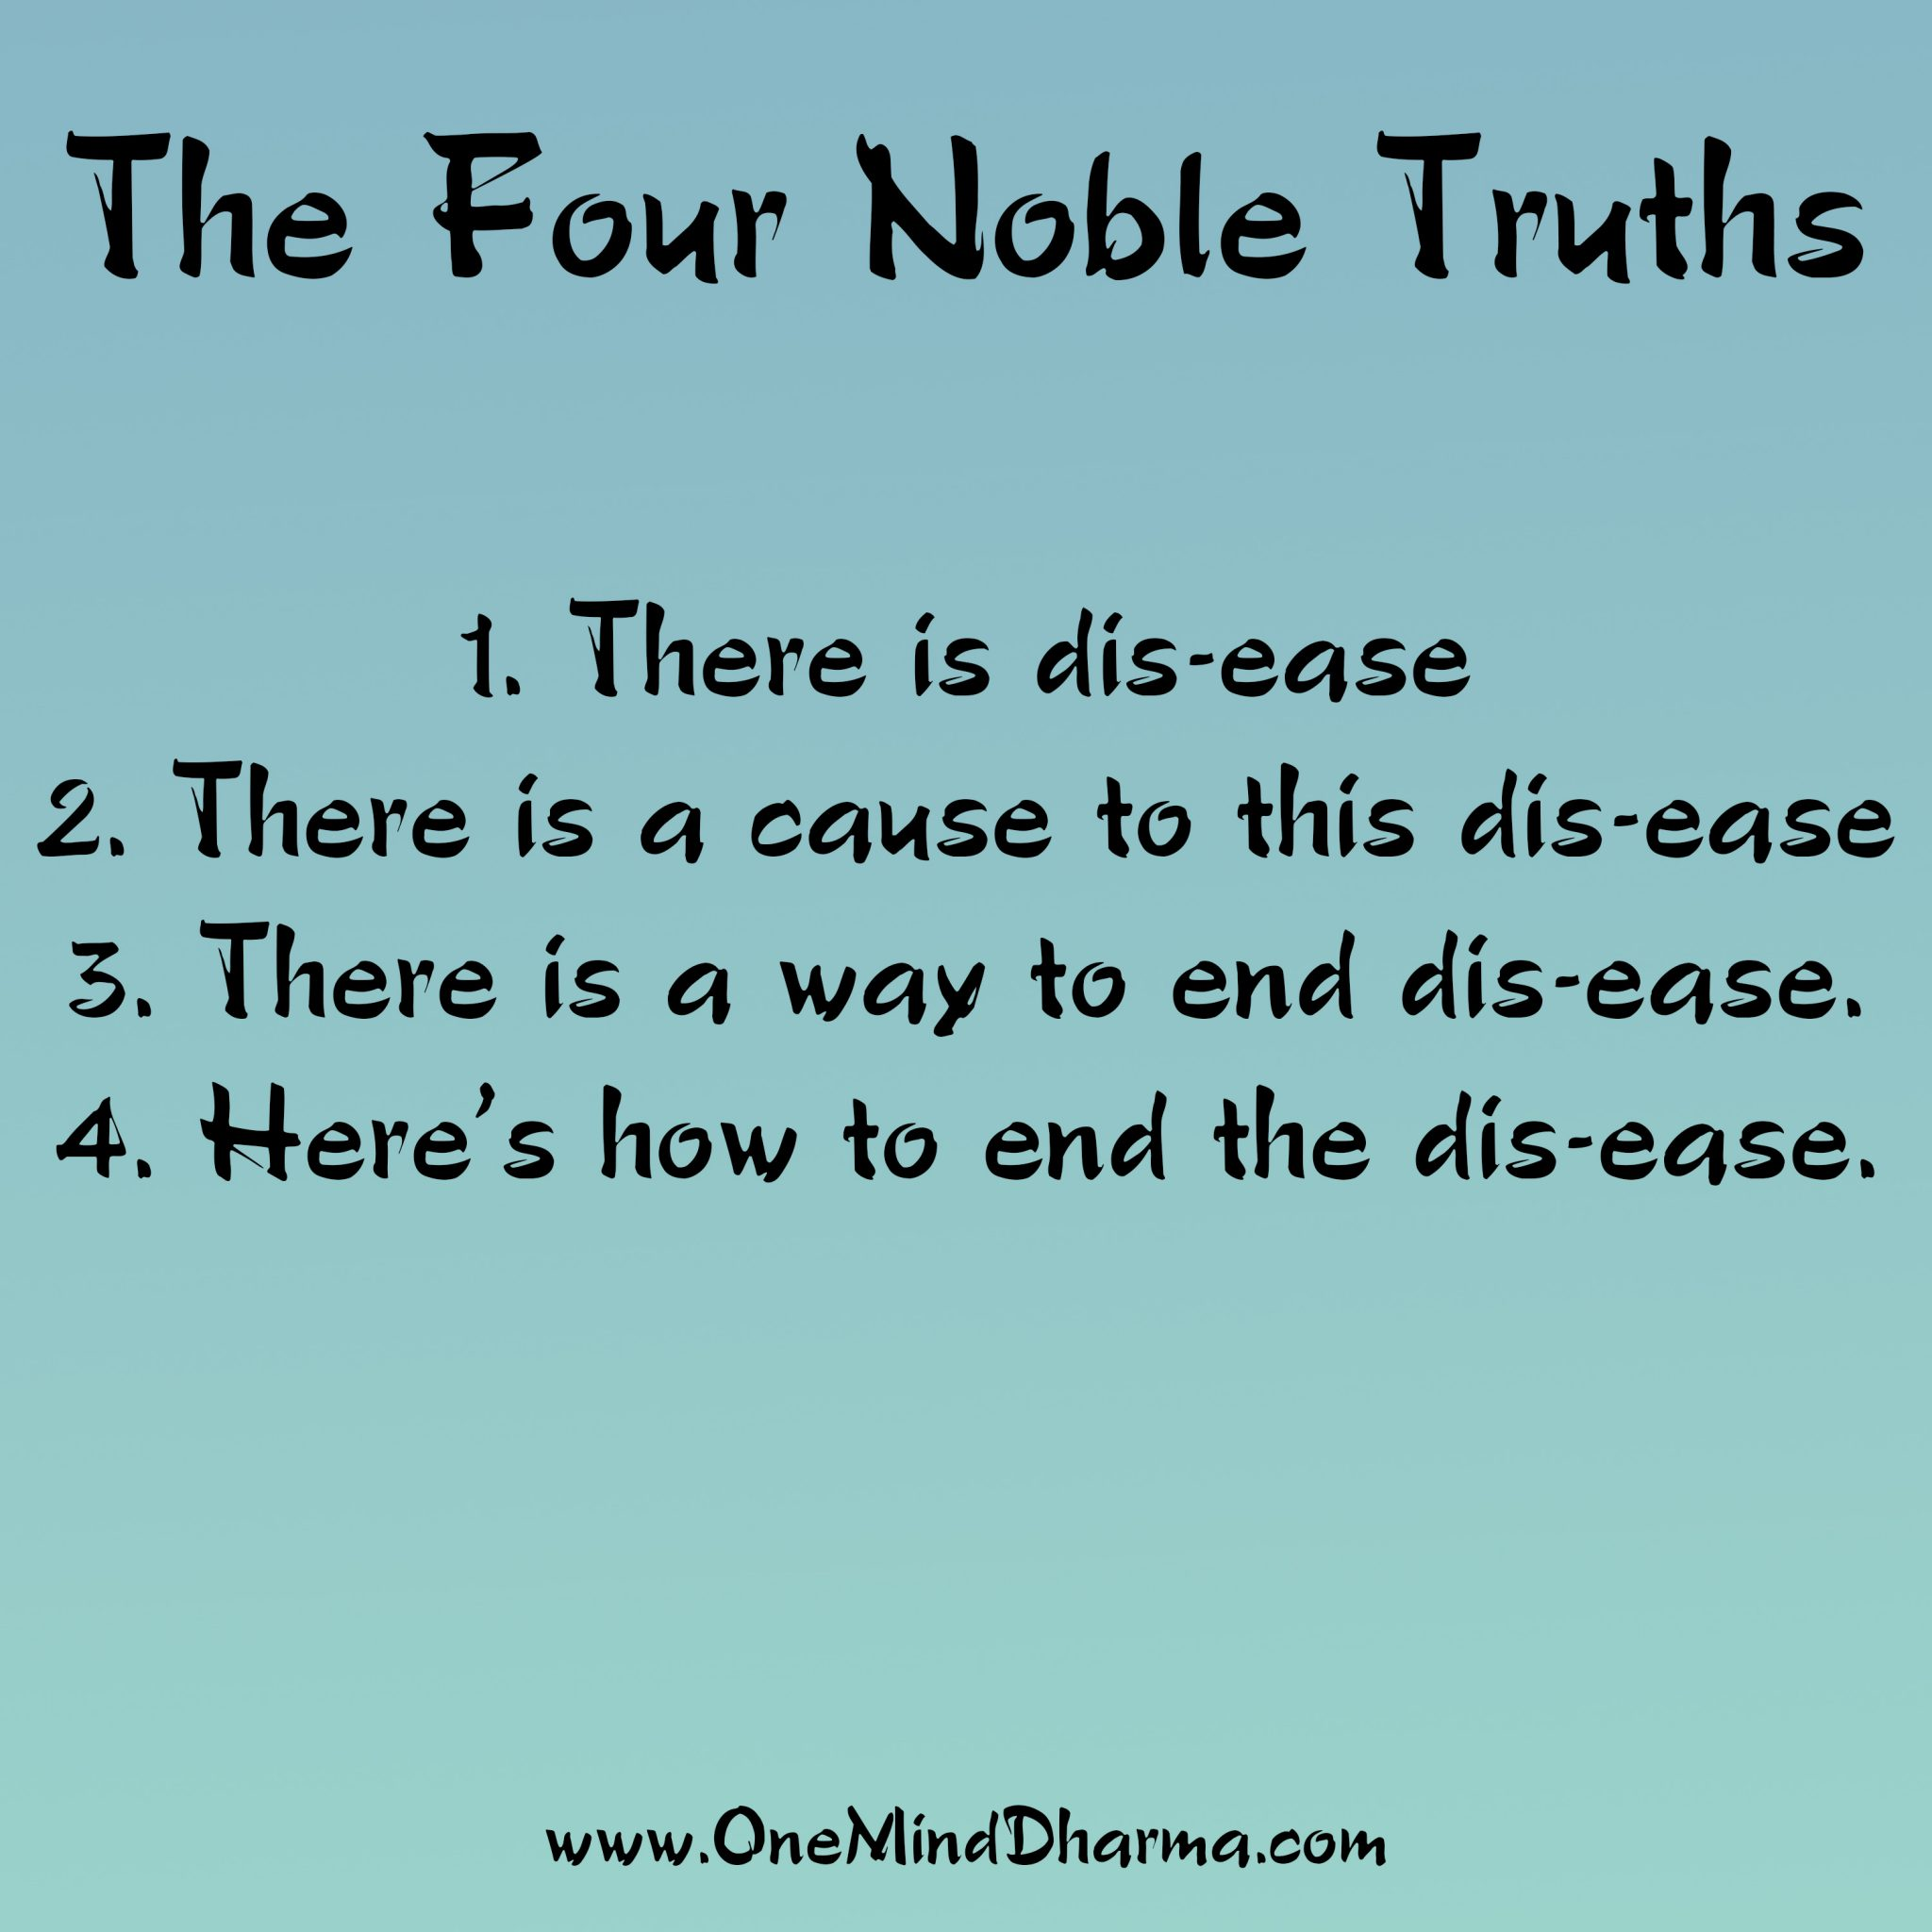 buddhism 4 noble truths essay Buddhist philosophy: 4 noble truths, dependent origination order description choose two out of a number of possible questions, and to write short essays in response to each question.